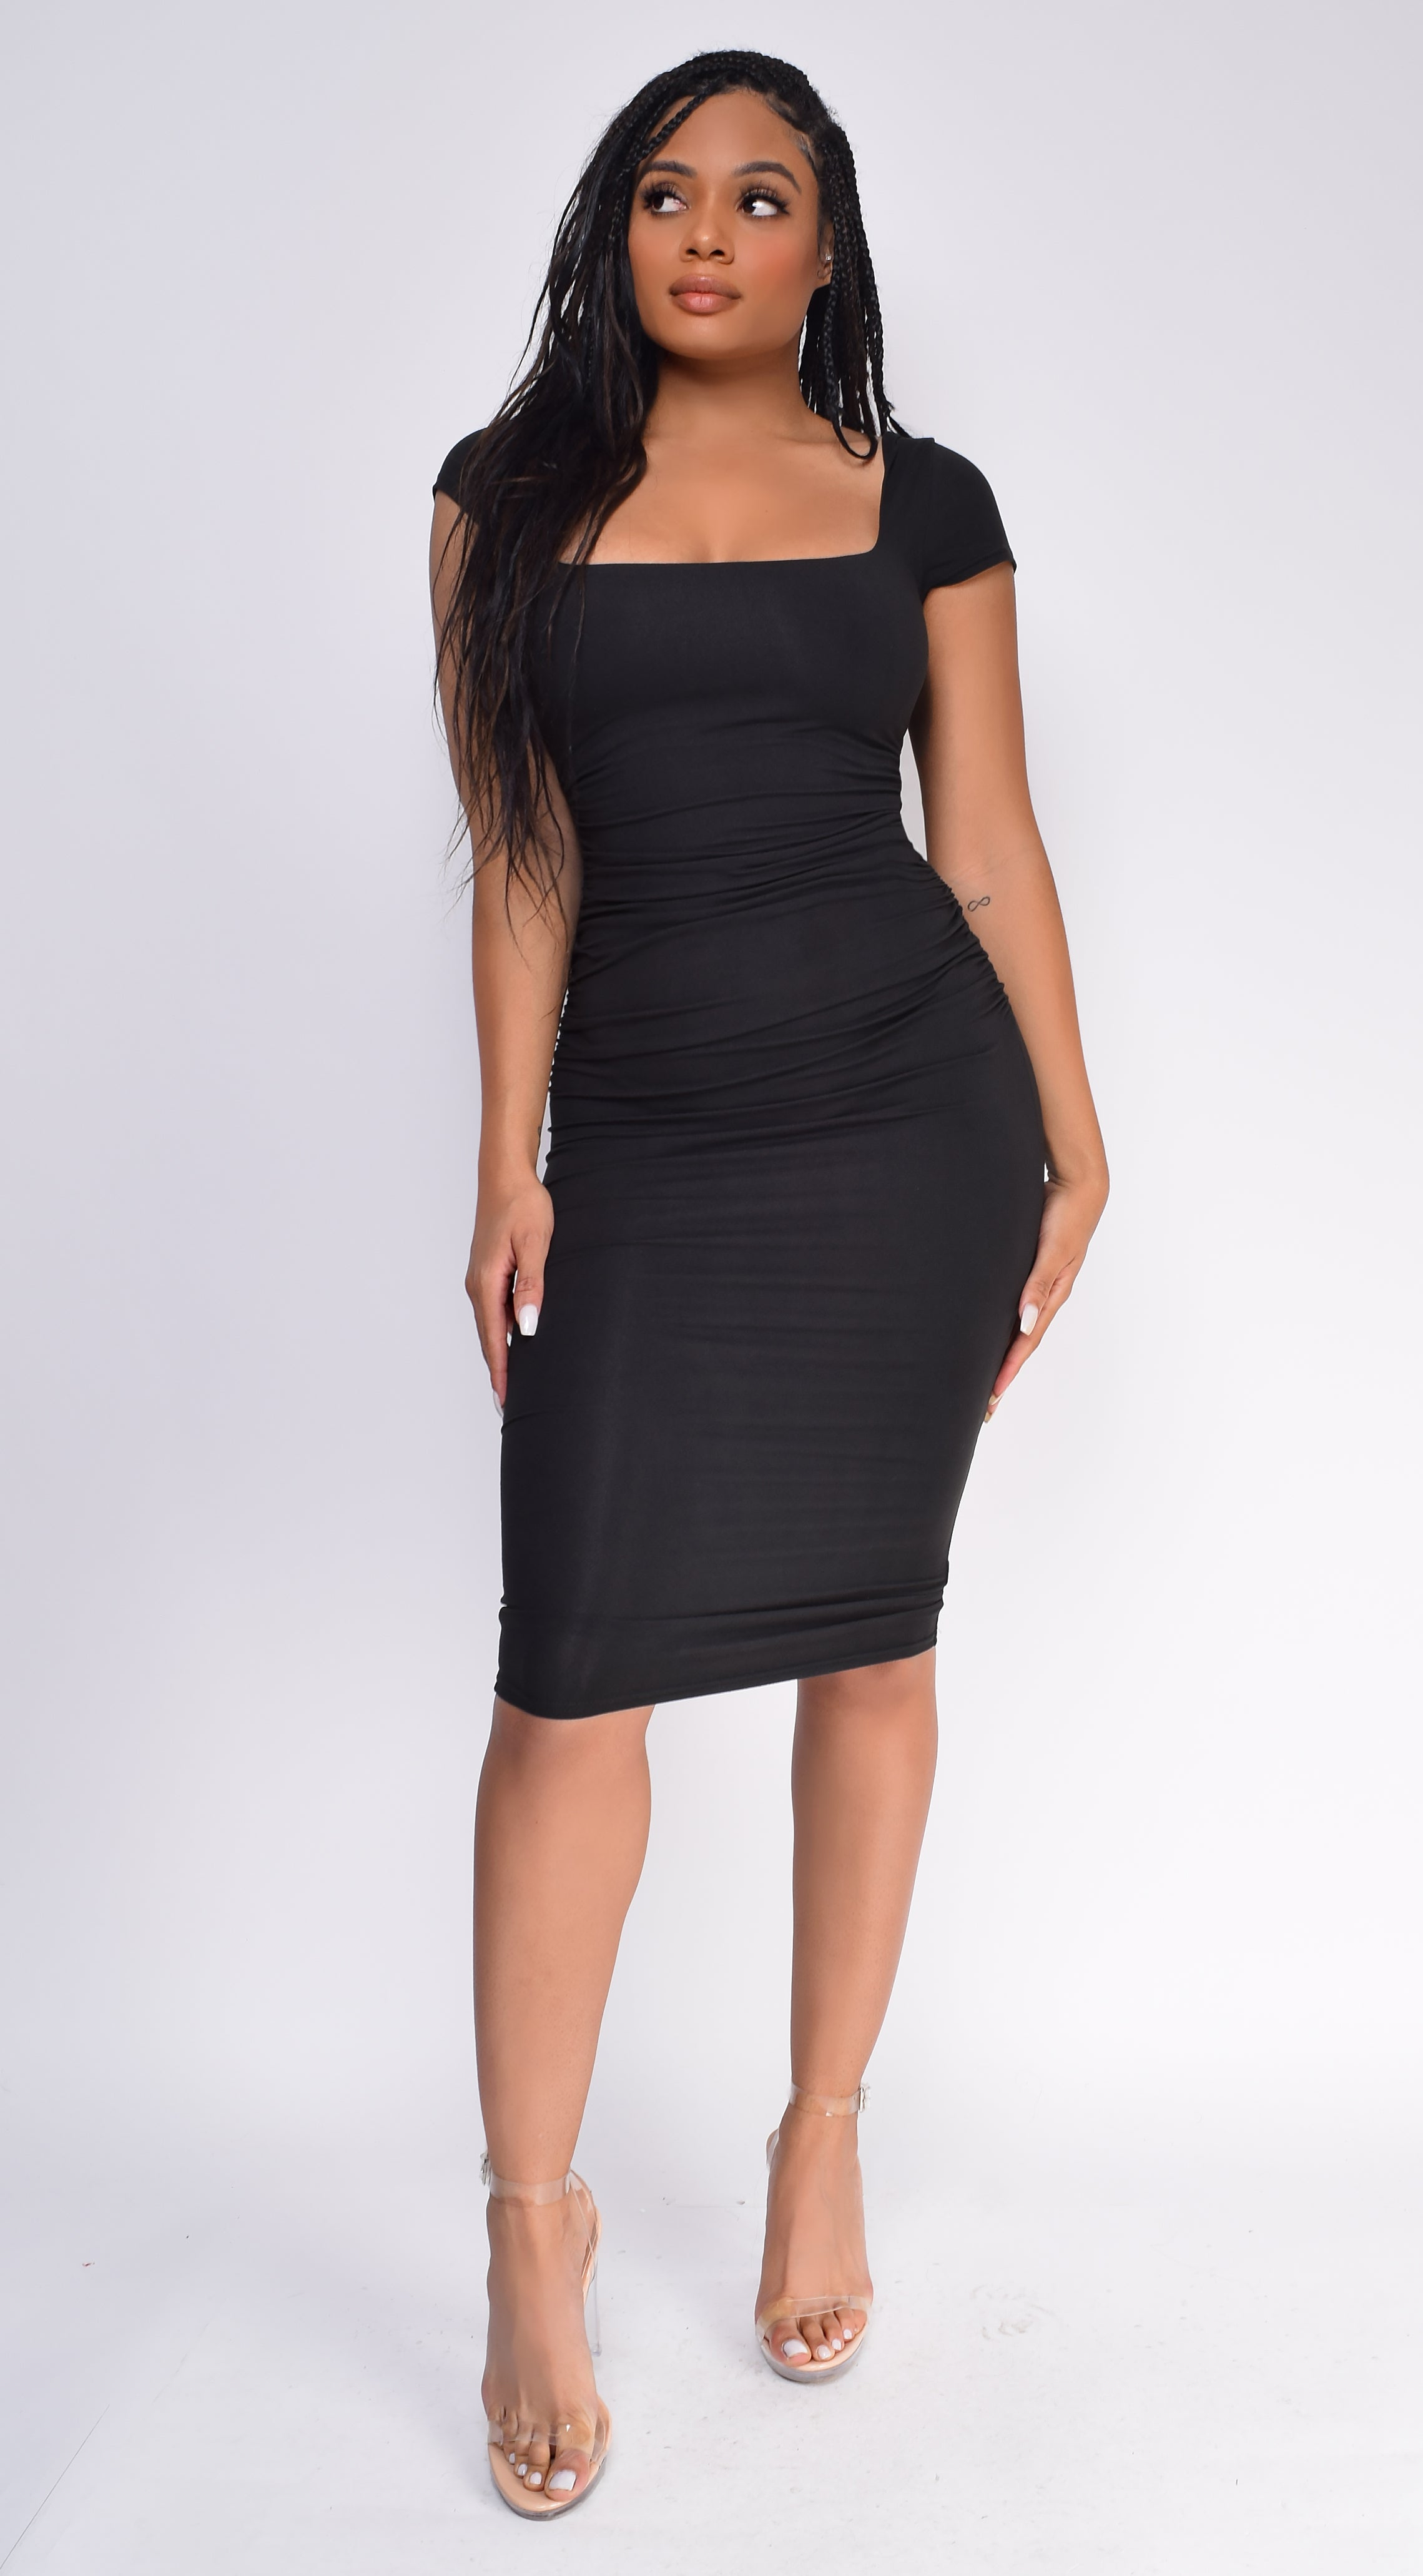 Lyna Black Square Neck Short Sleeve Dress